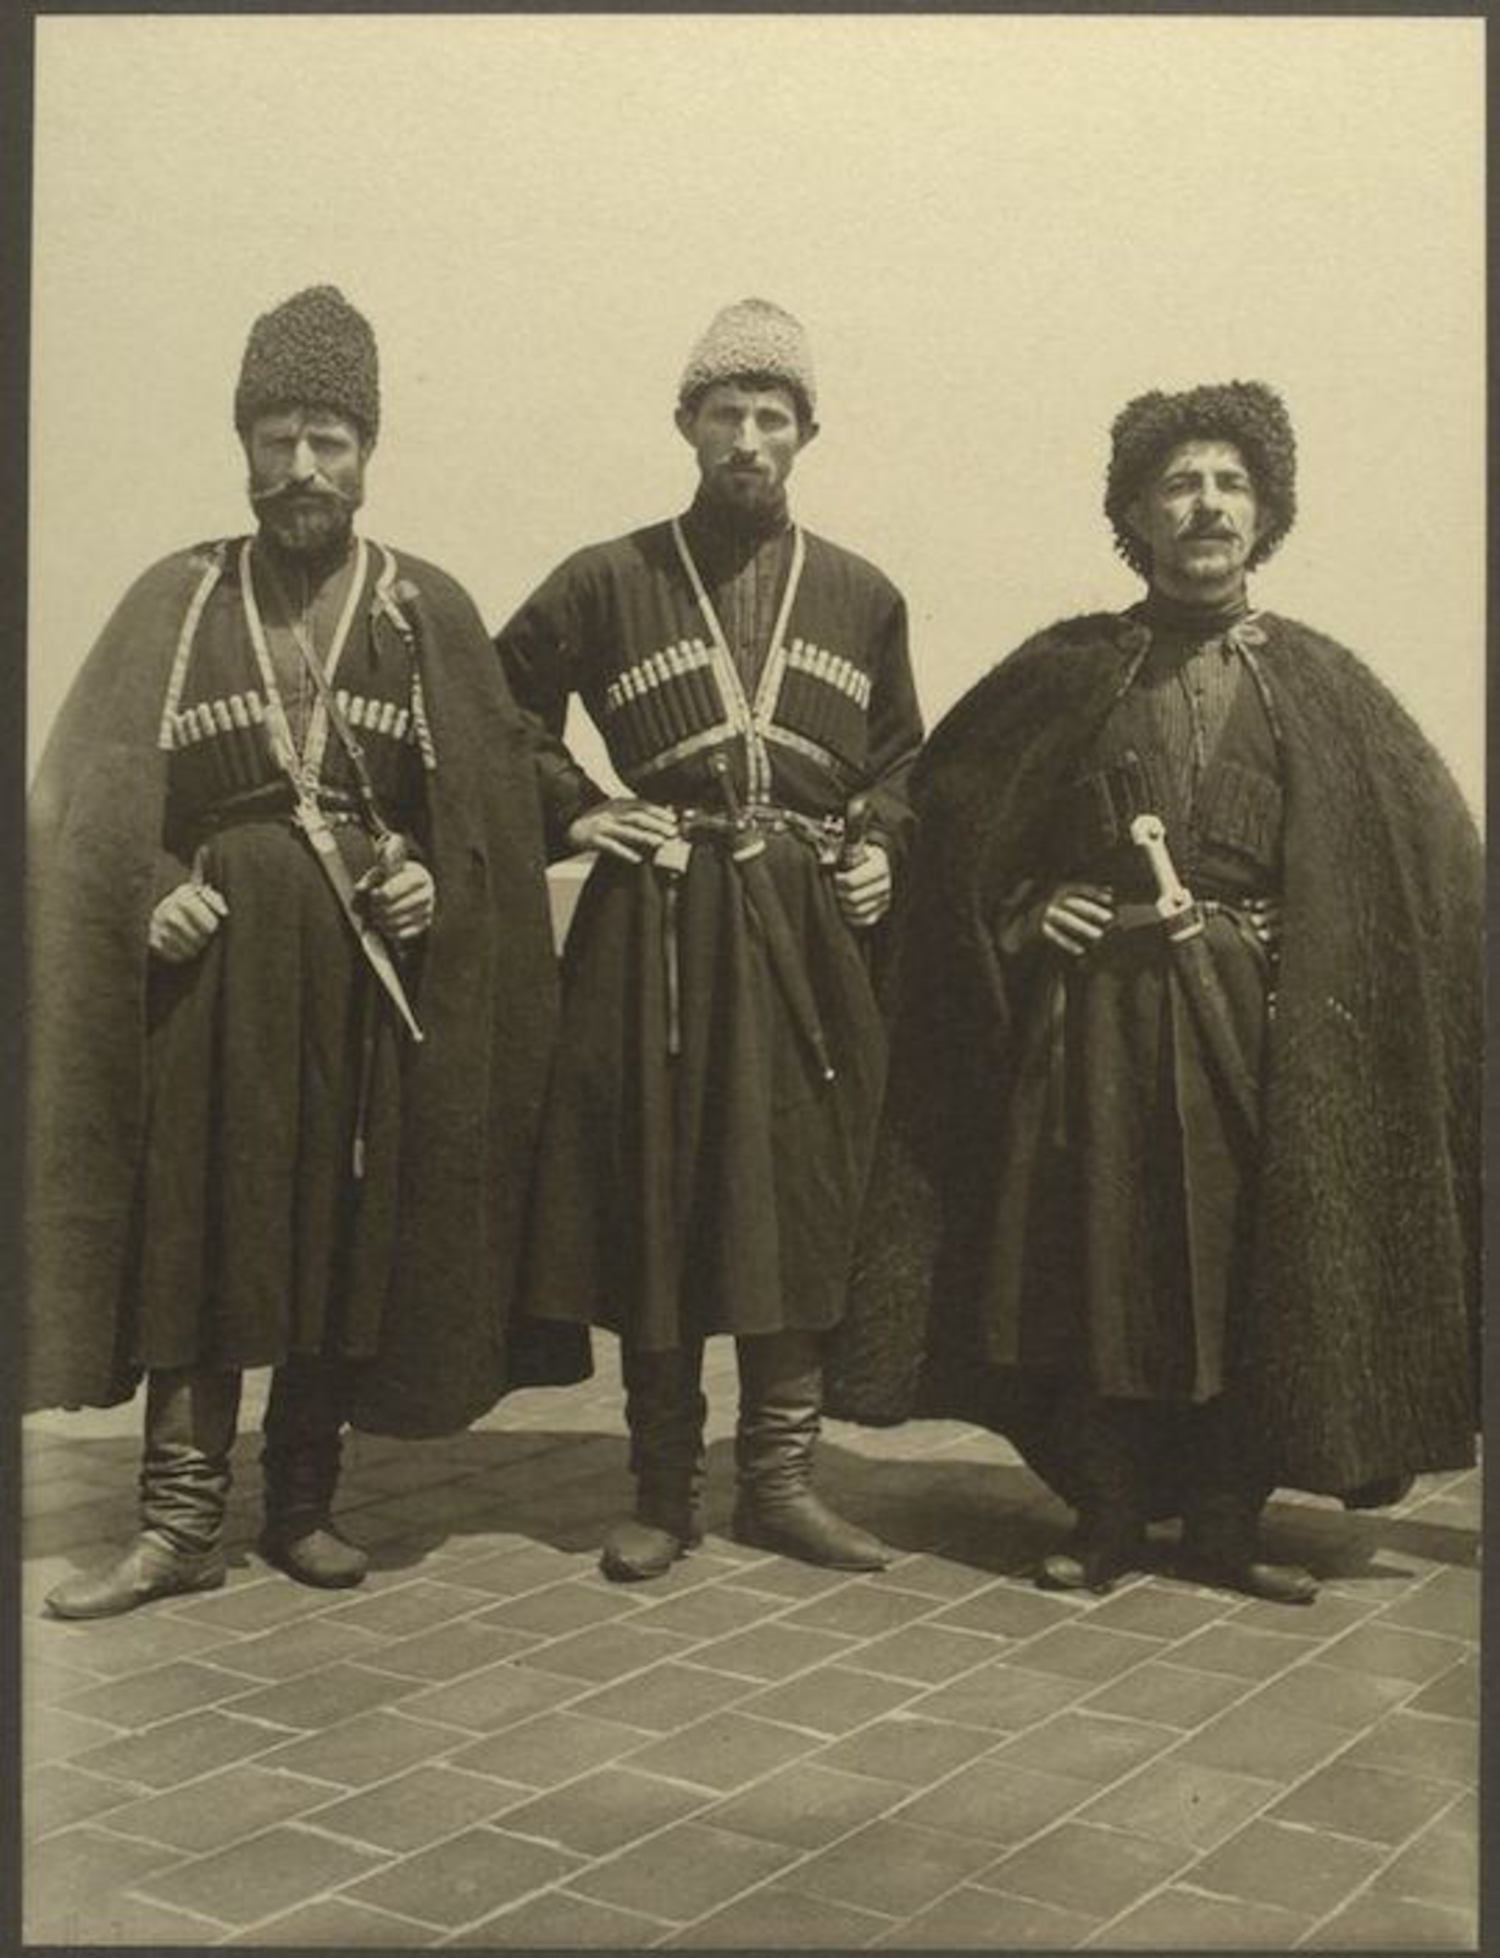 Men from the Russian Empire. Portraits for Ellis Island.